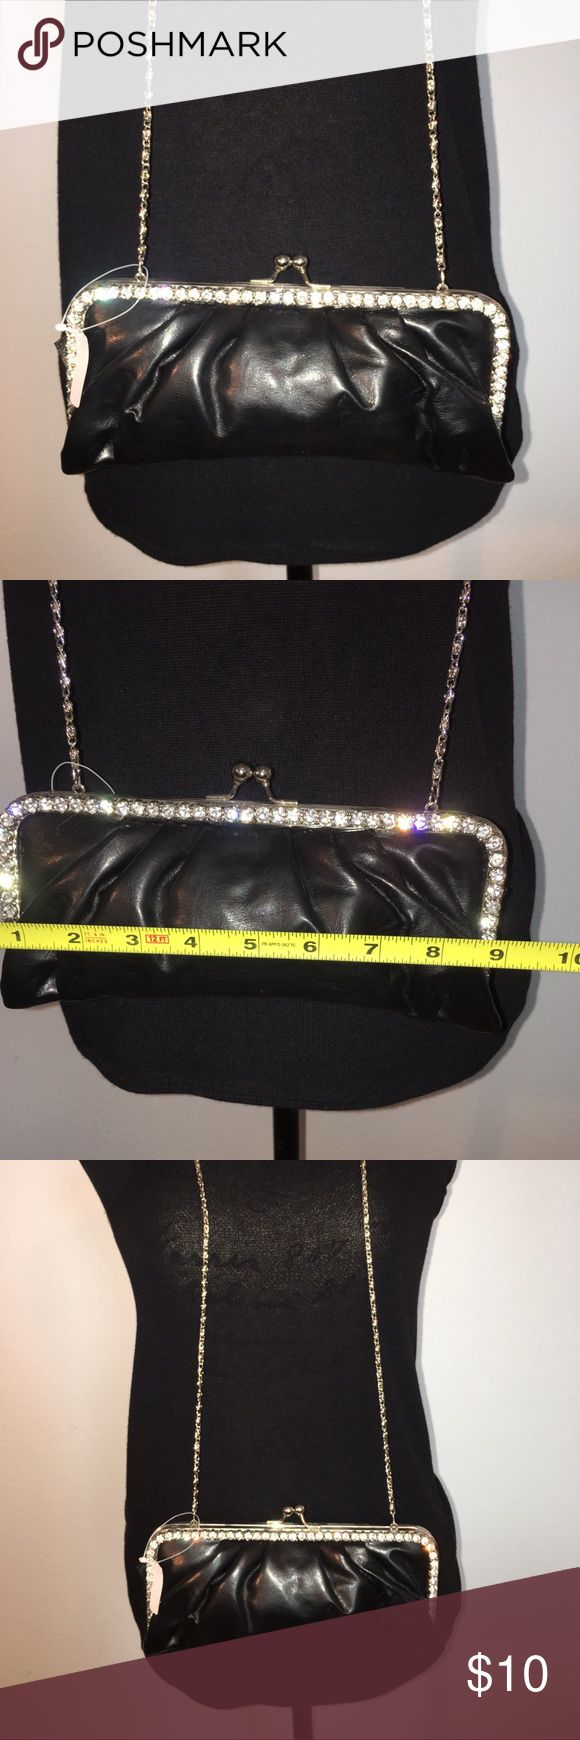 Black rhinestone clutch Black rhinestone clutch I never use it. No rhinestones missing . Perfect for an evening on the town. Bags Mini Bags